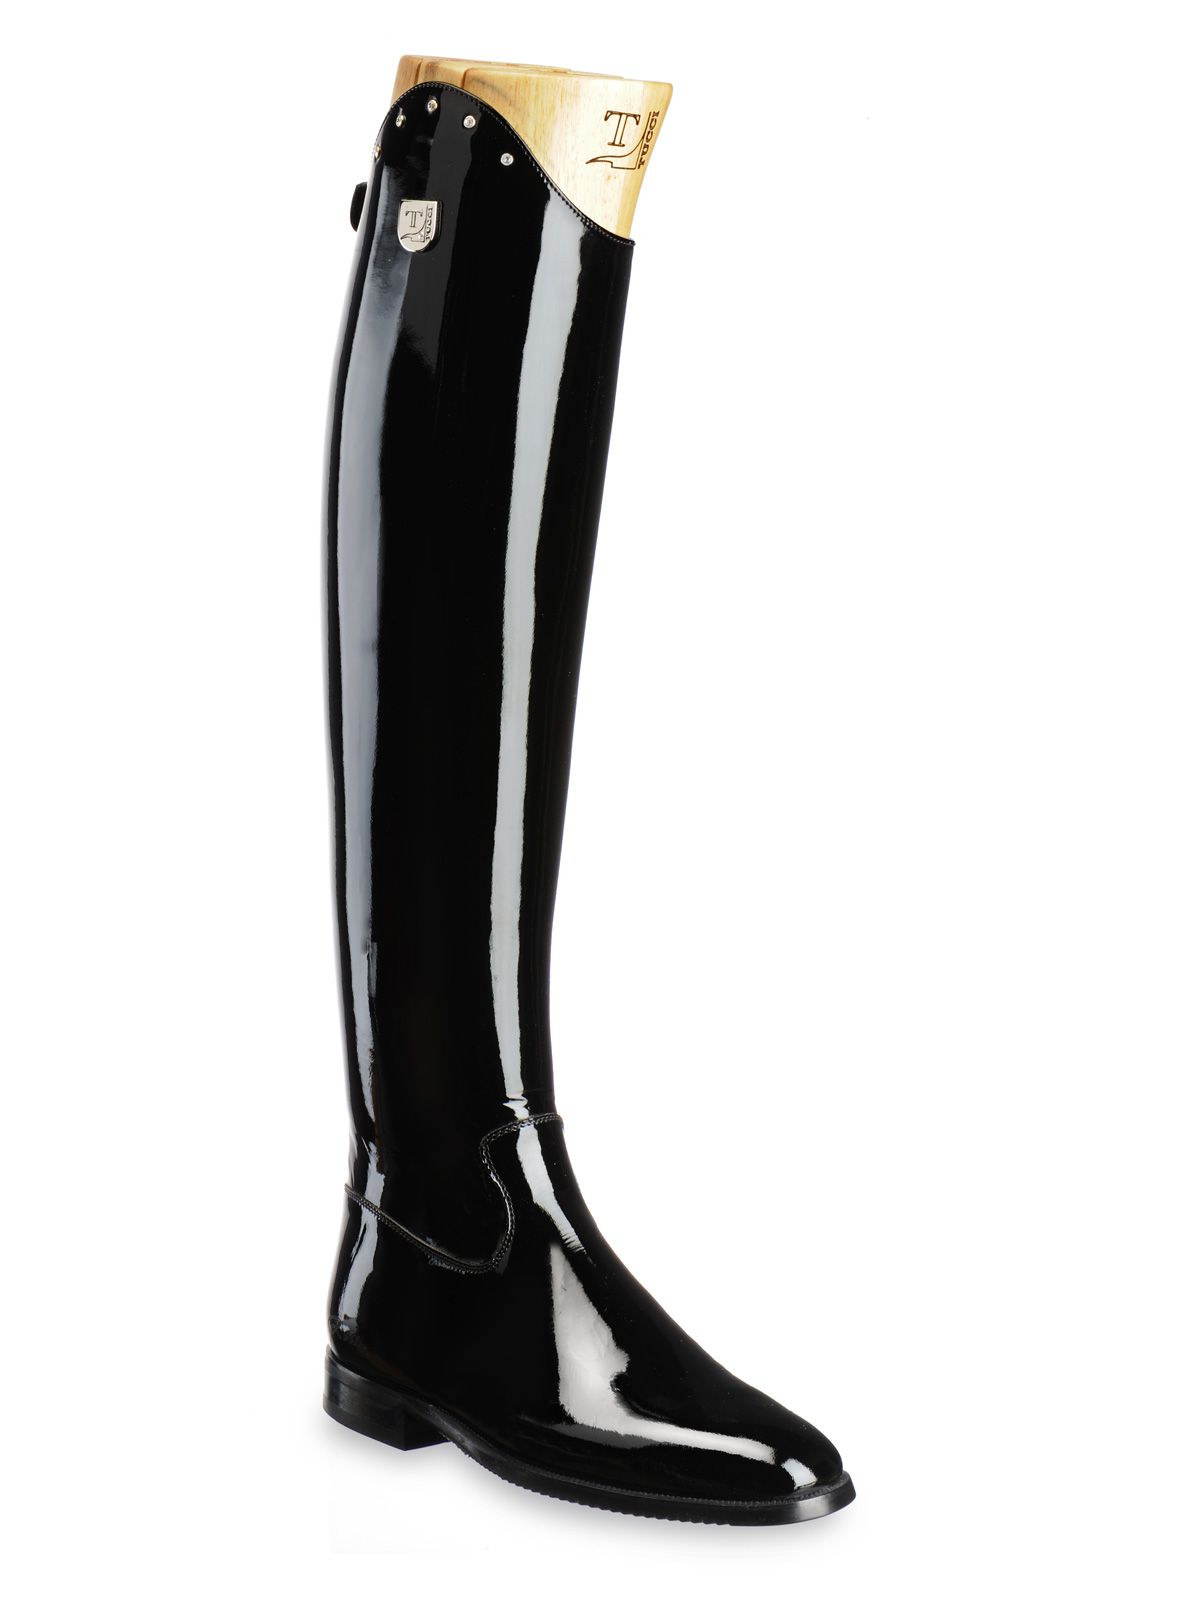 1e1d41114f3 Tucci Dressage Collection Tall boot in black patent leather with rigid leg,  back zipper, and Swarovski crystal. Produced using Italian calfskin with an  ...